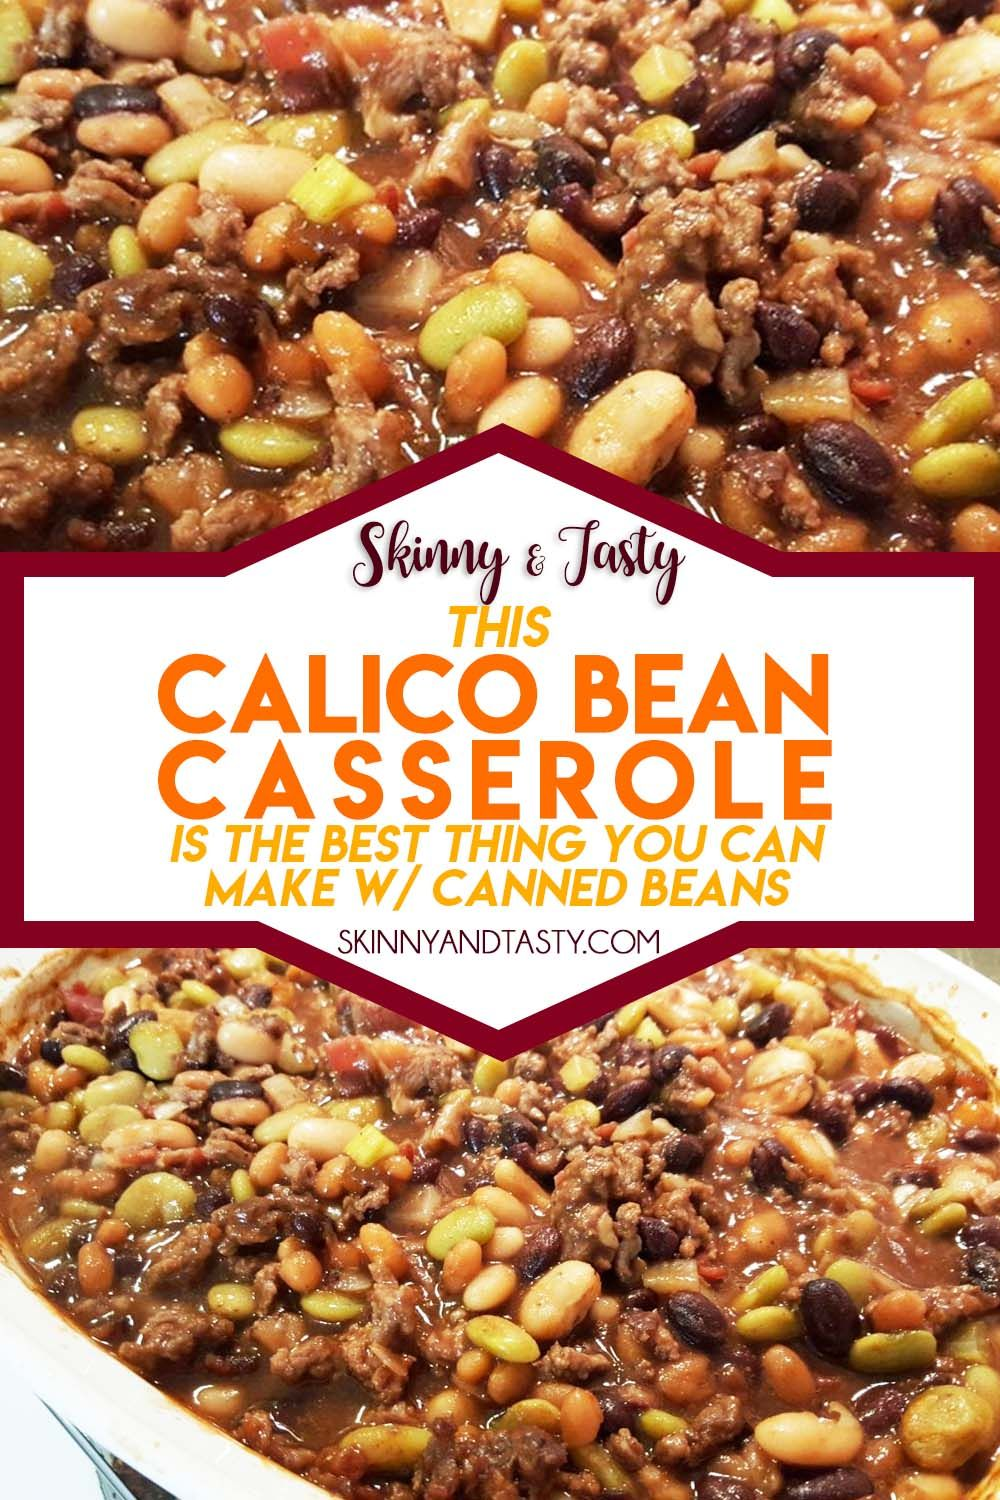 This Calico Bean Casserole Is The Best Thing You Can Make With Canned Beans Recipe In 2020 Calico Beans Recipes Bean Casserole